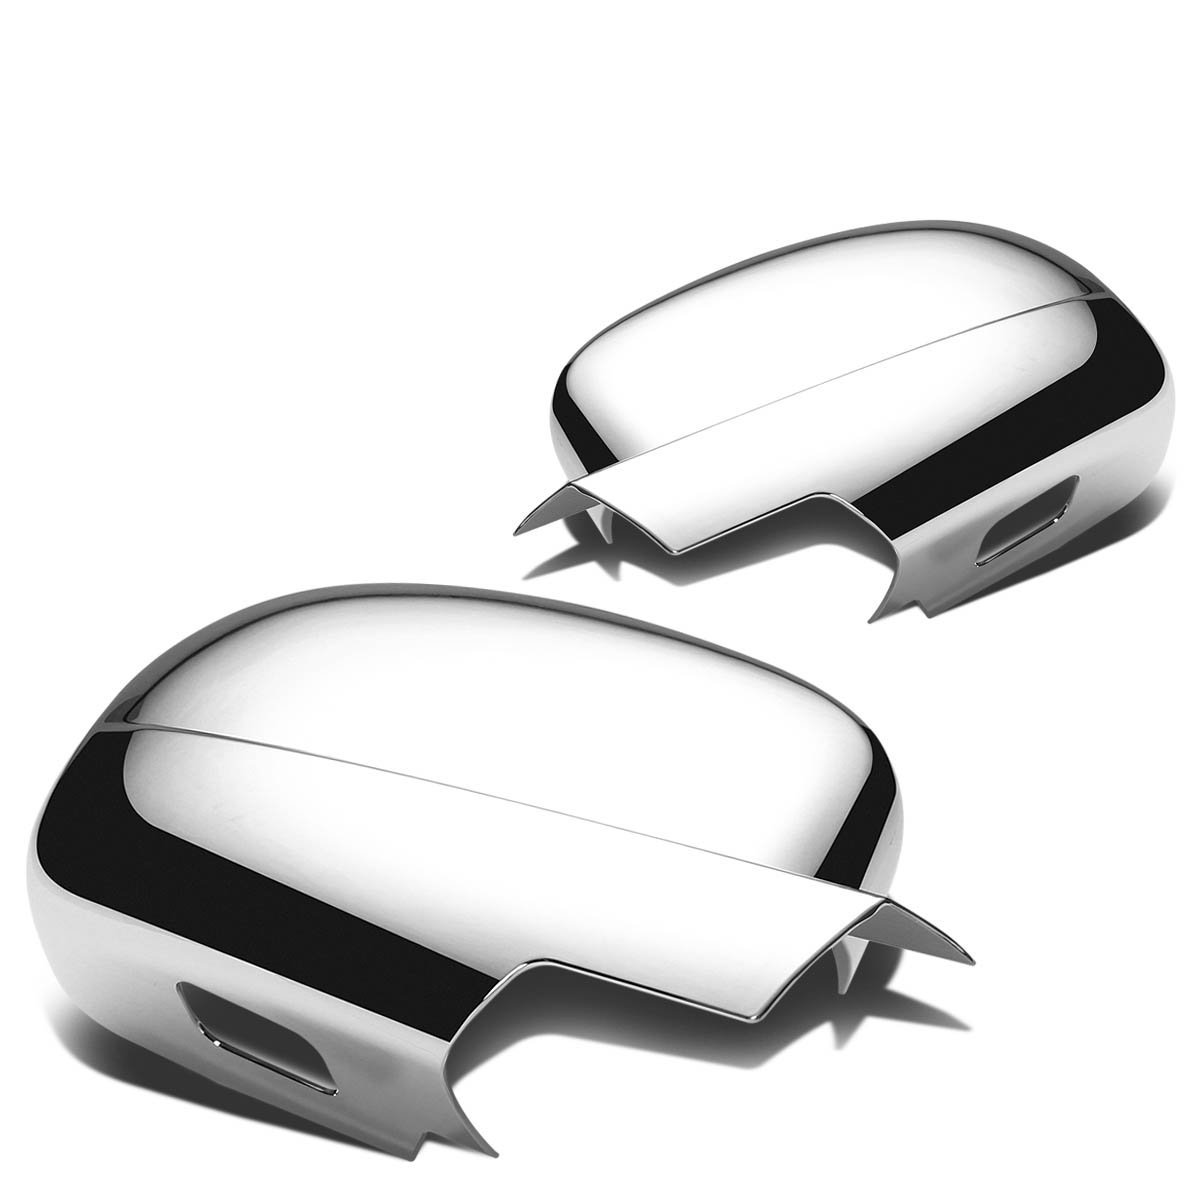 07 13 chevy suburban 4dr chrome plated door handle mirror cover trim